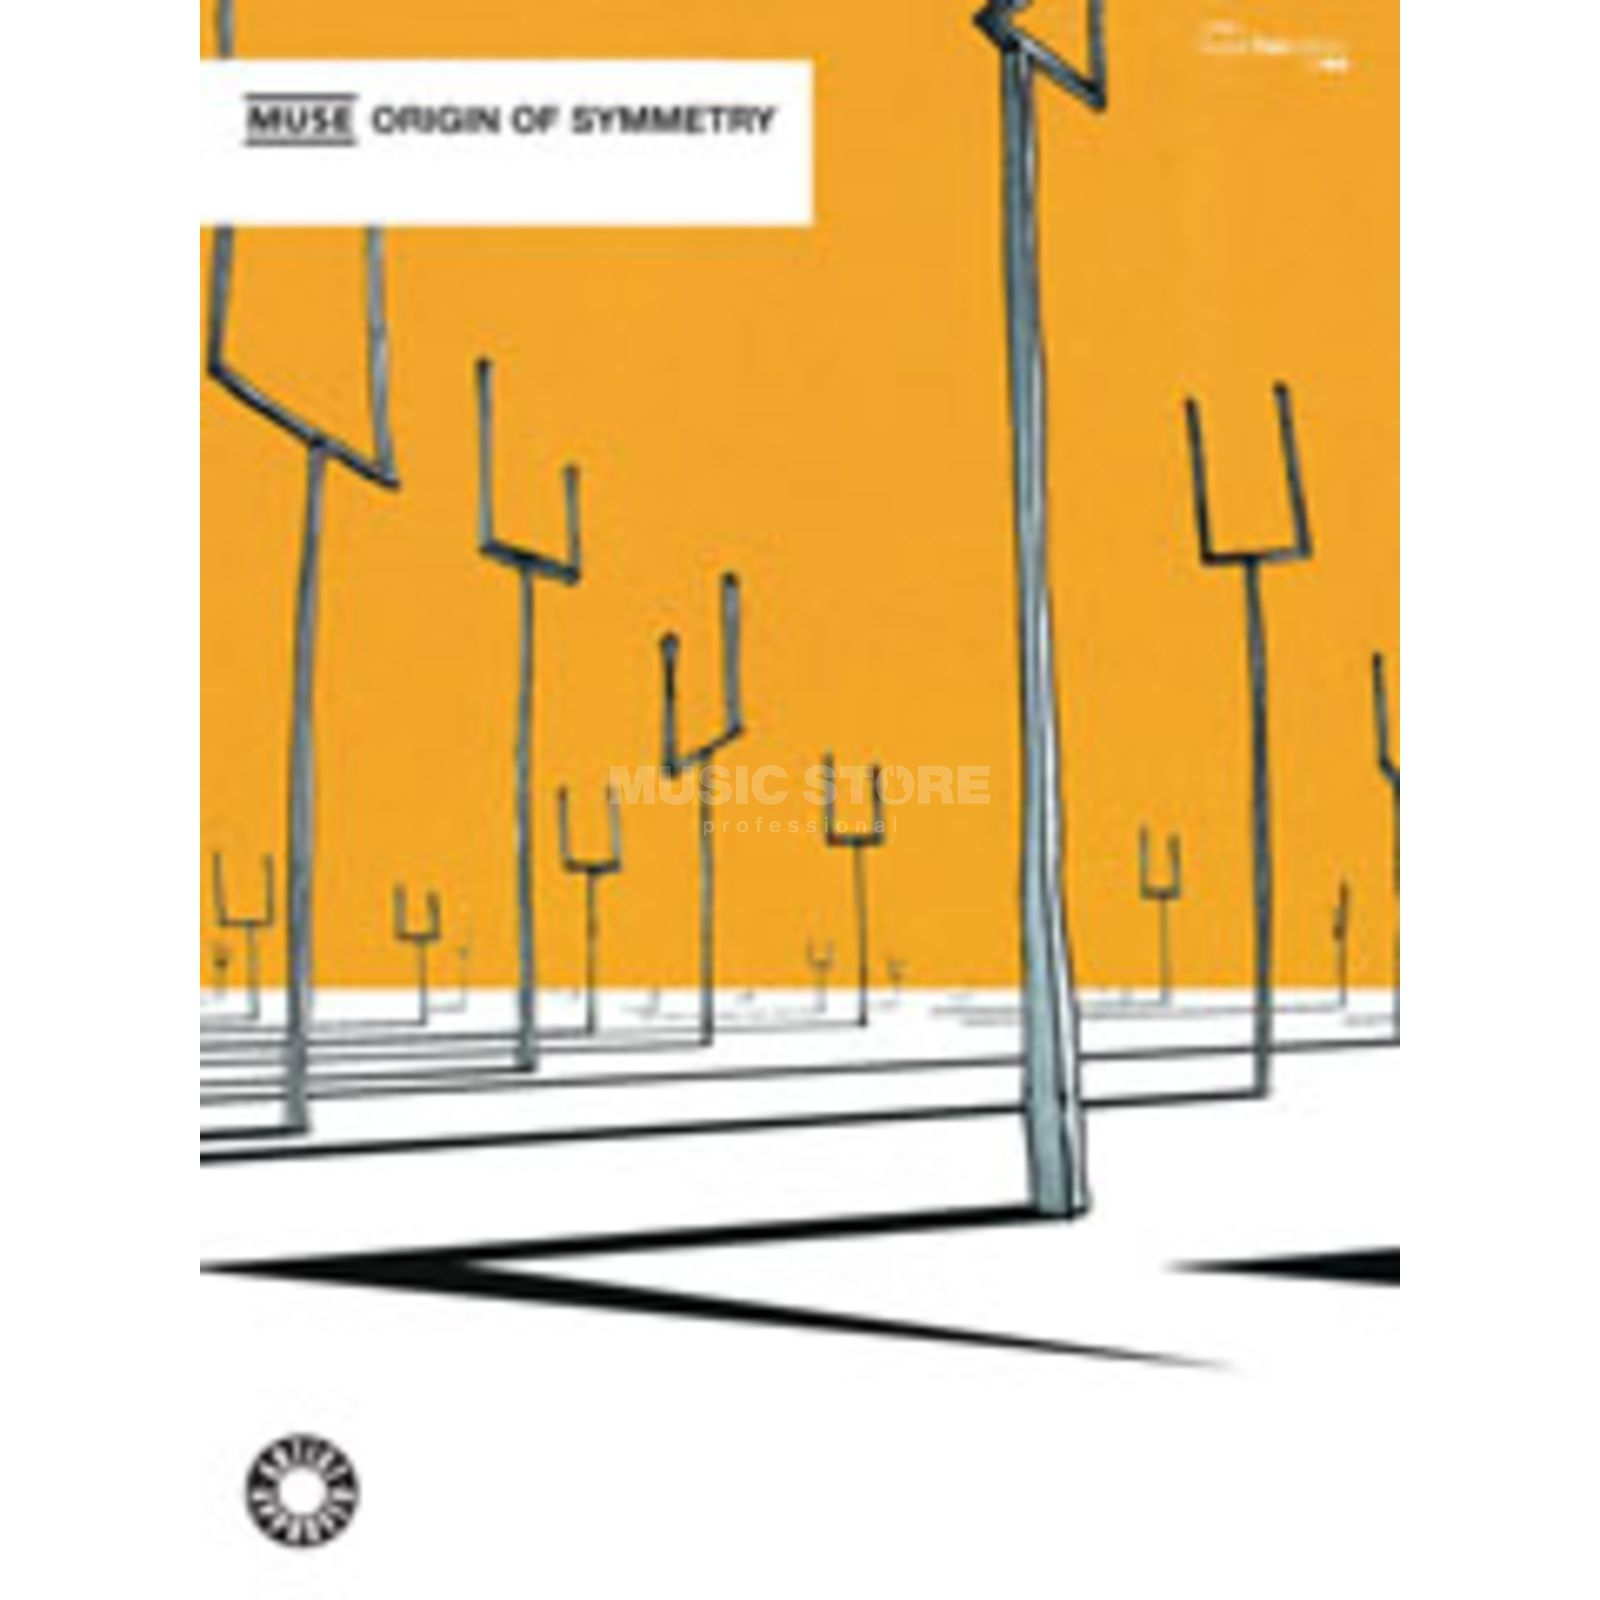 Faber Music Muse: Origin Of Symmetry Produktbild